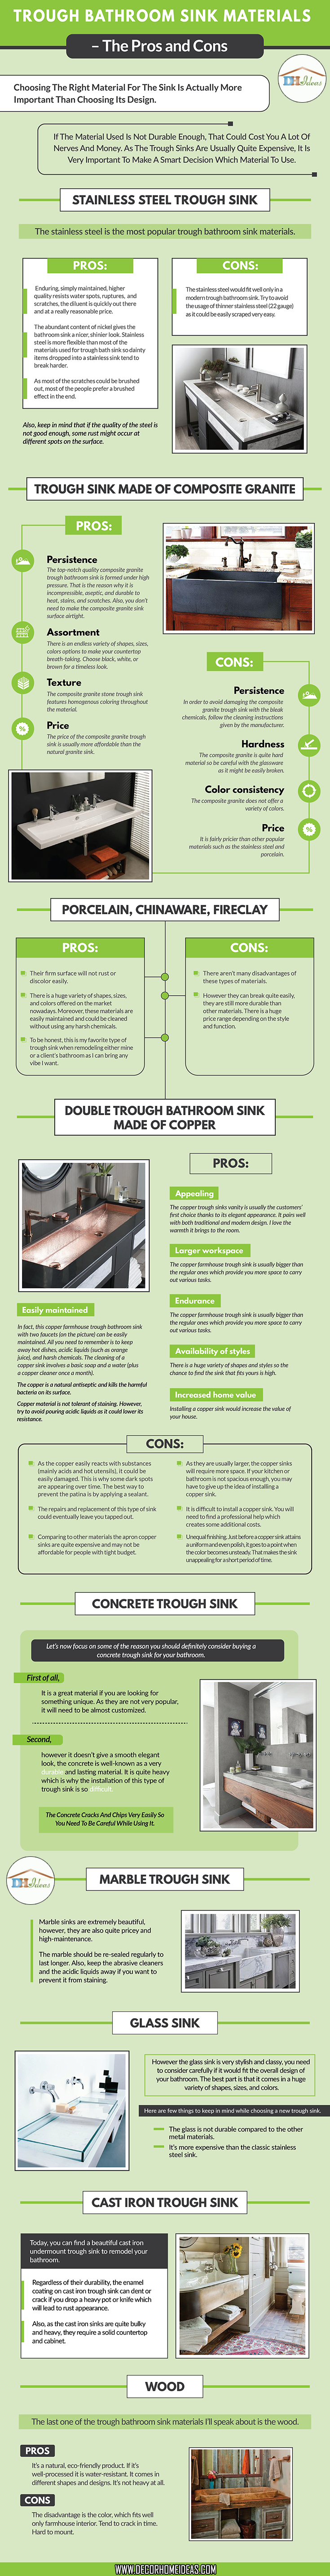 Trough Bathroom Sink Pros and Cons Infographic. Information on materials used for trough bathroom sinks - stainless steel, chinaware, porcelain, copper, concrete, wood, glass. Comparison of durability and design. #troughsink #sink #bathroom #infographic